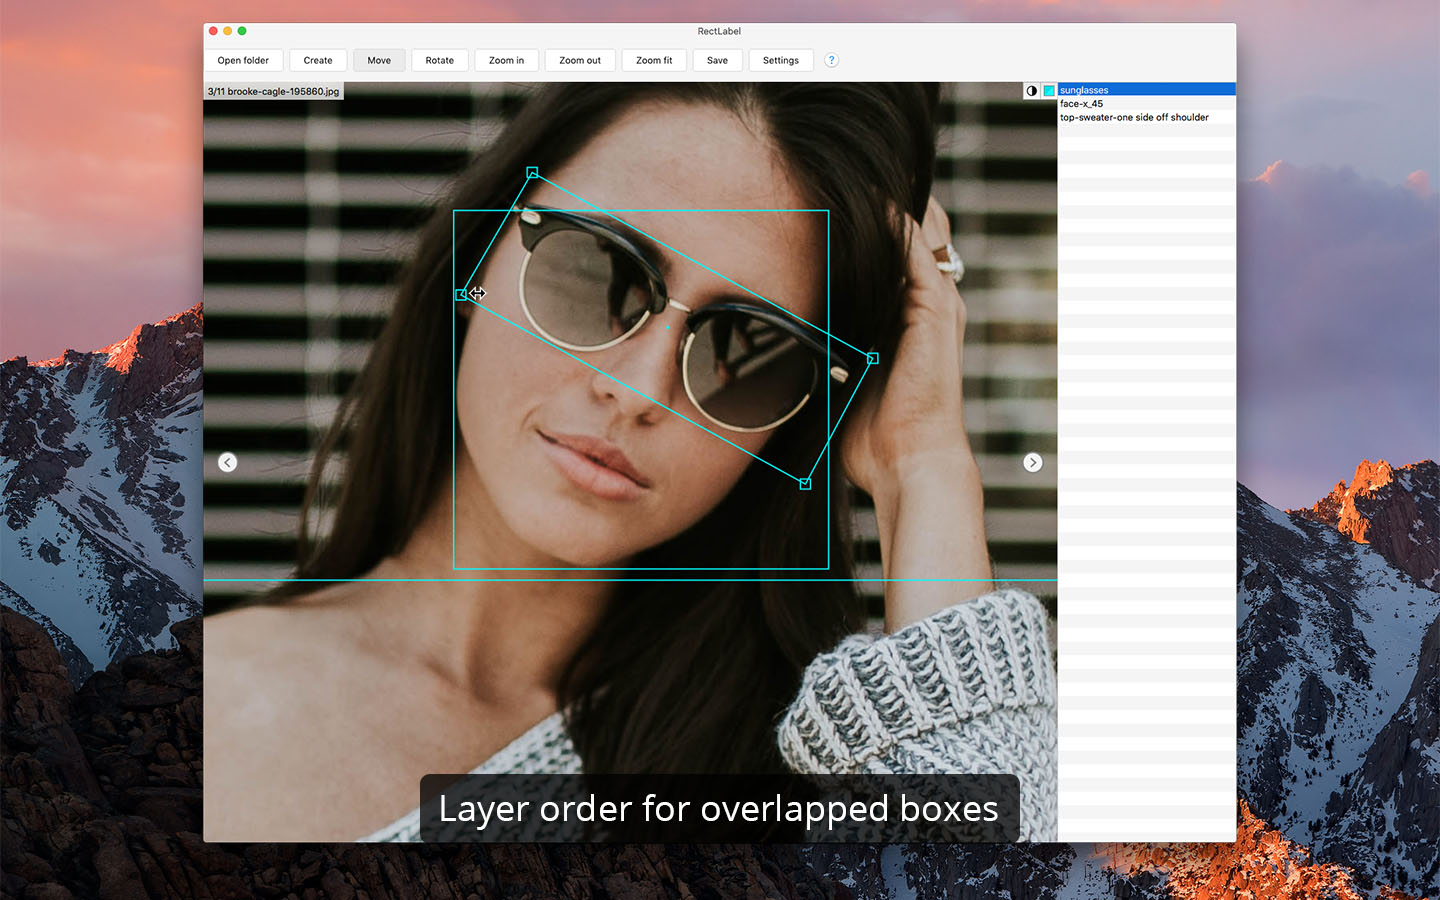 Layer order for overlapped boxes